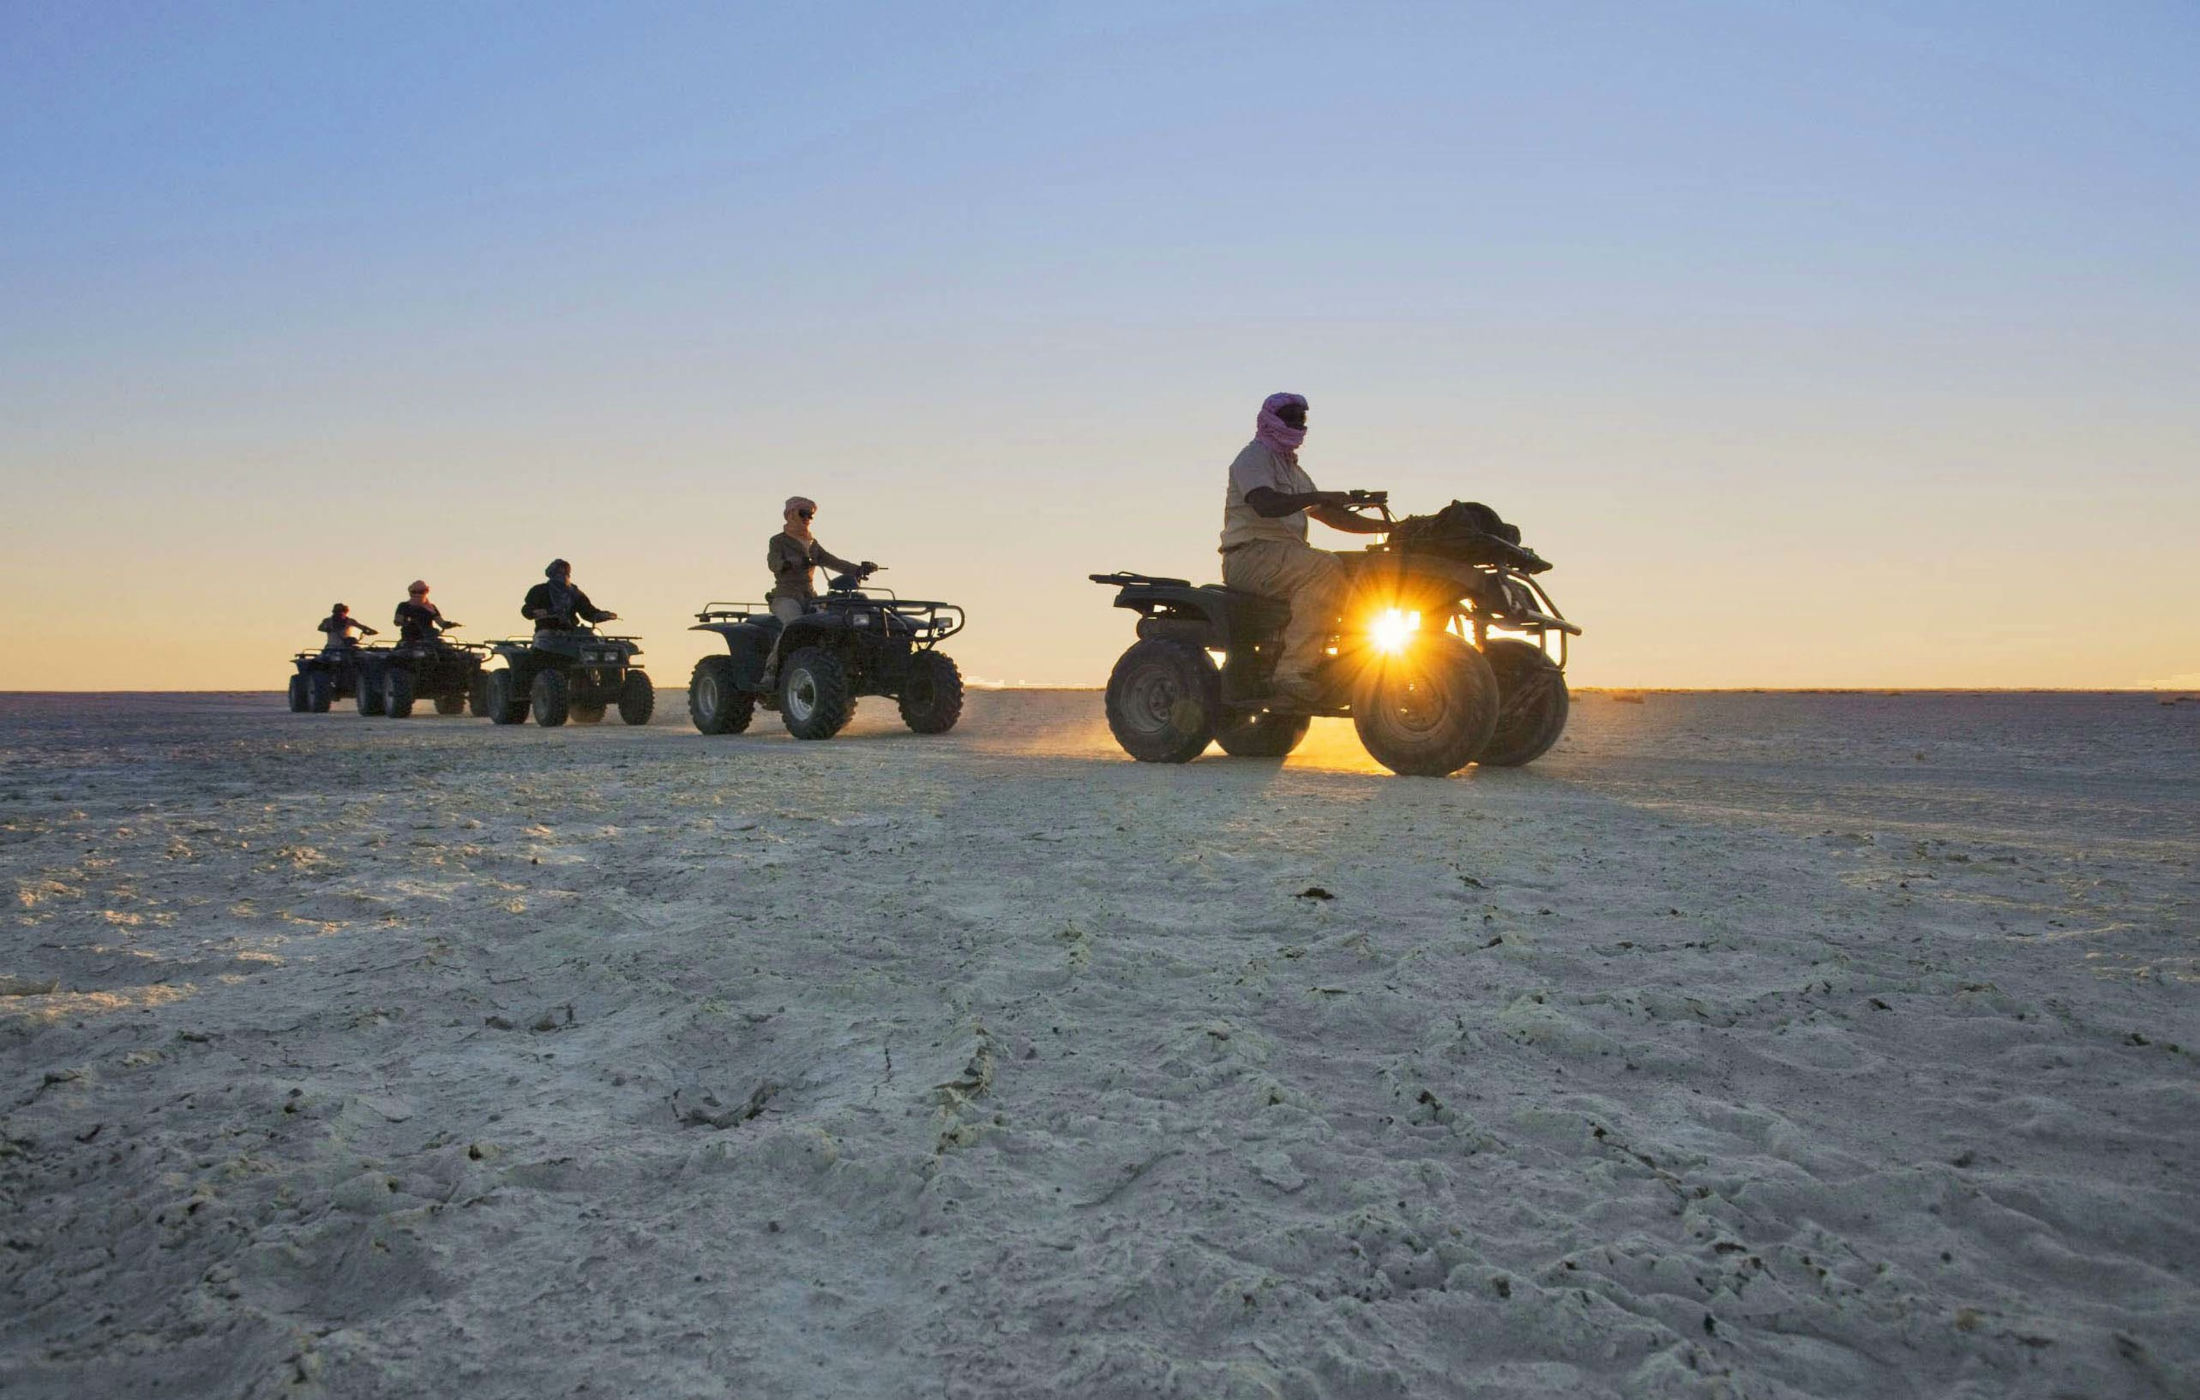 a group of tourists on atvs